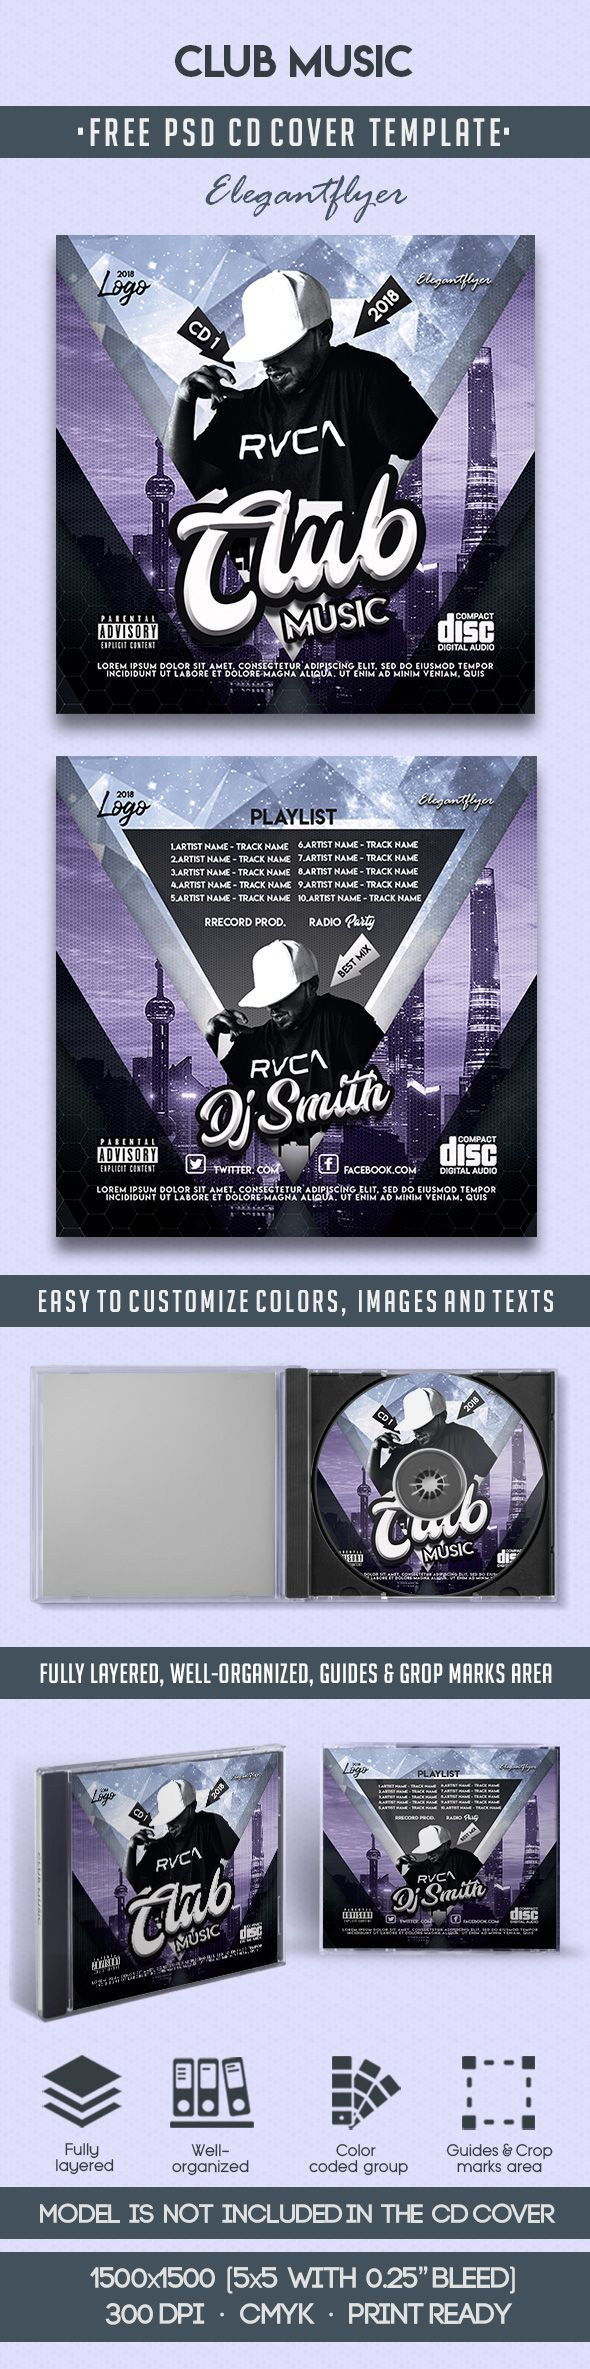 club music free cd cover psd template free cd dvd cover